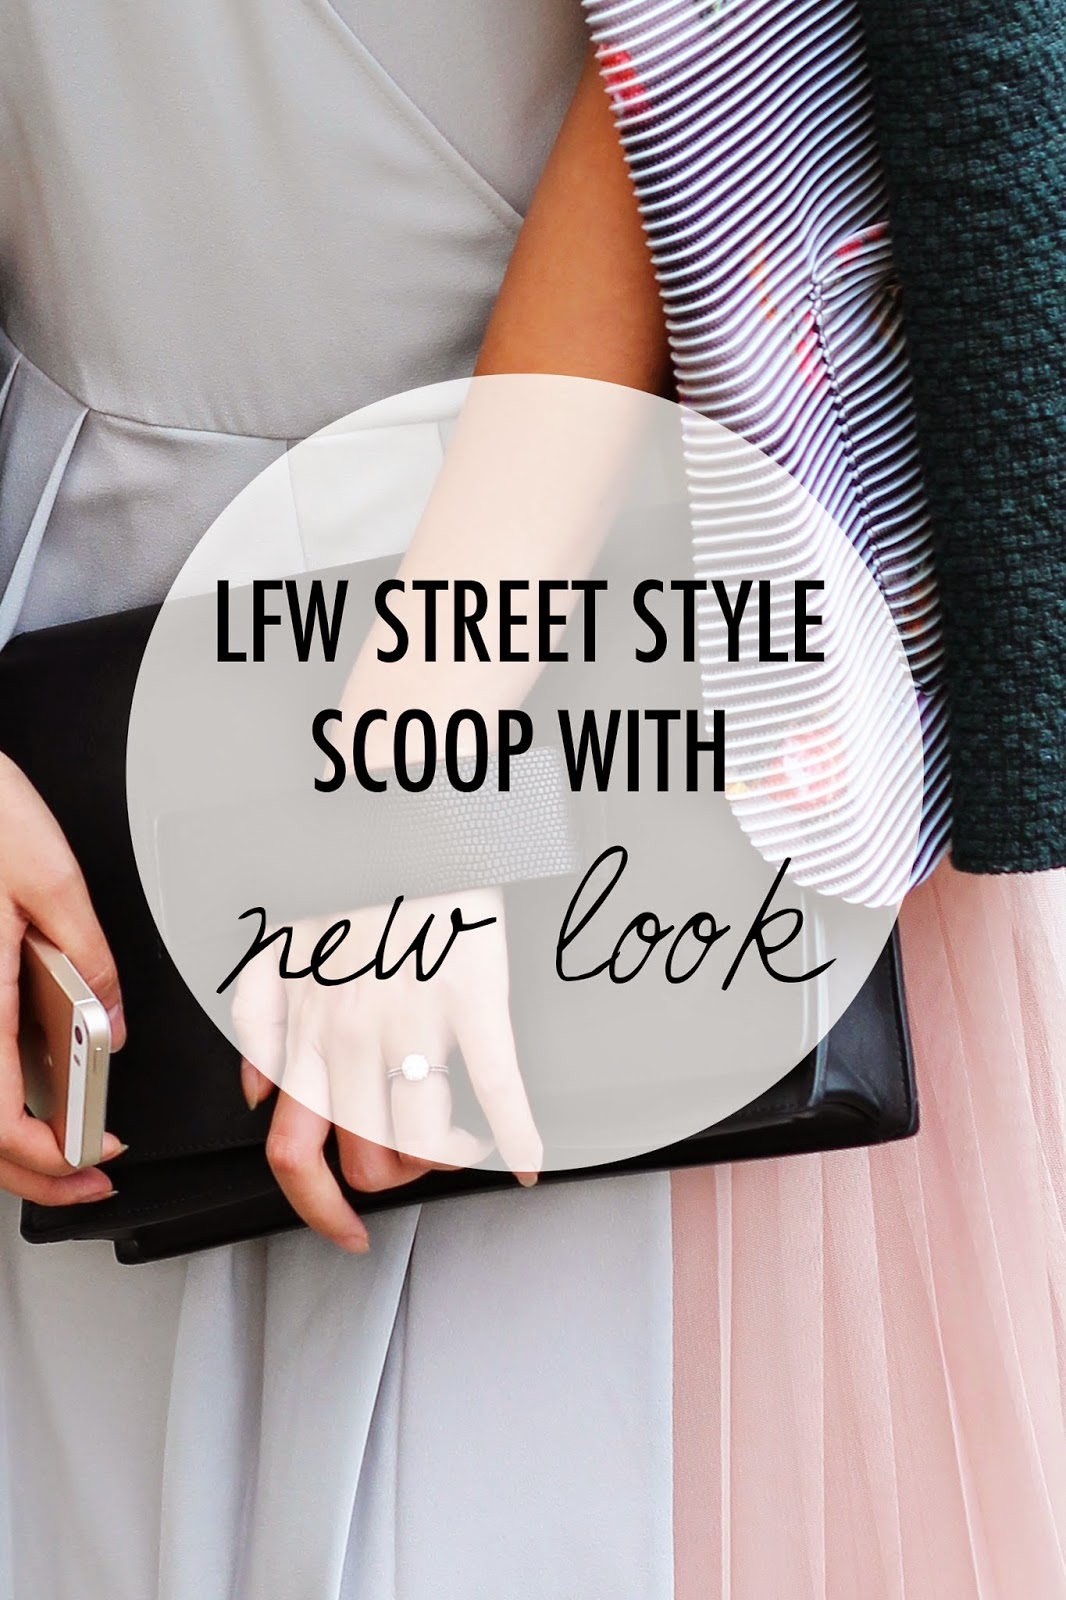 Getting The Street Style Scoop With New Look | LFW